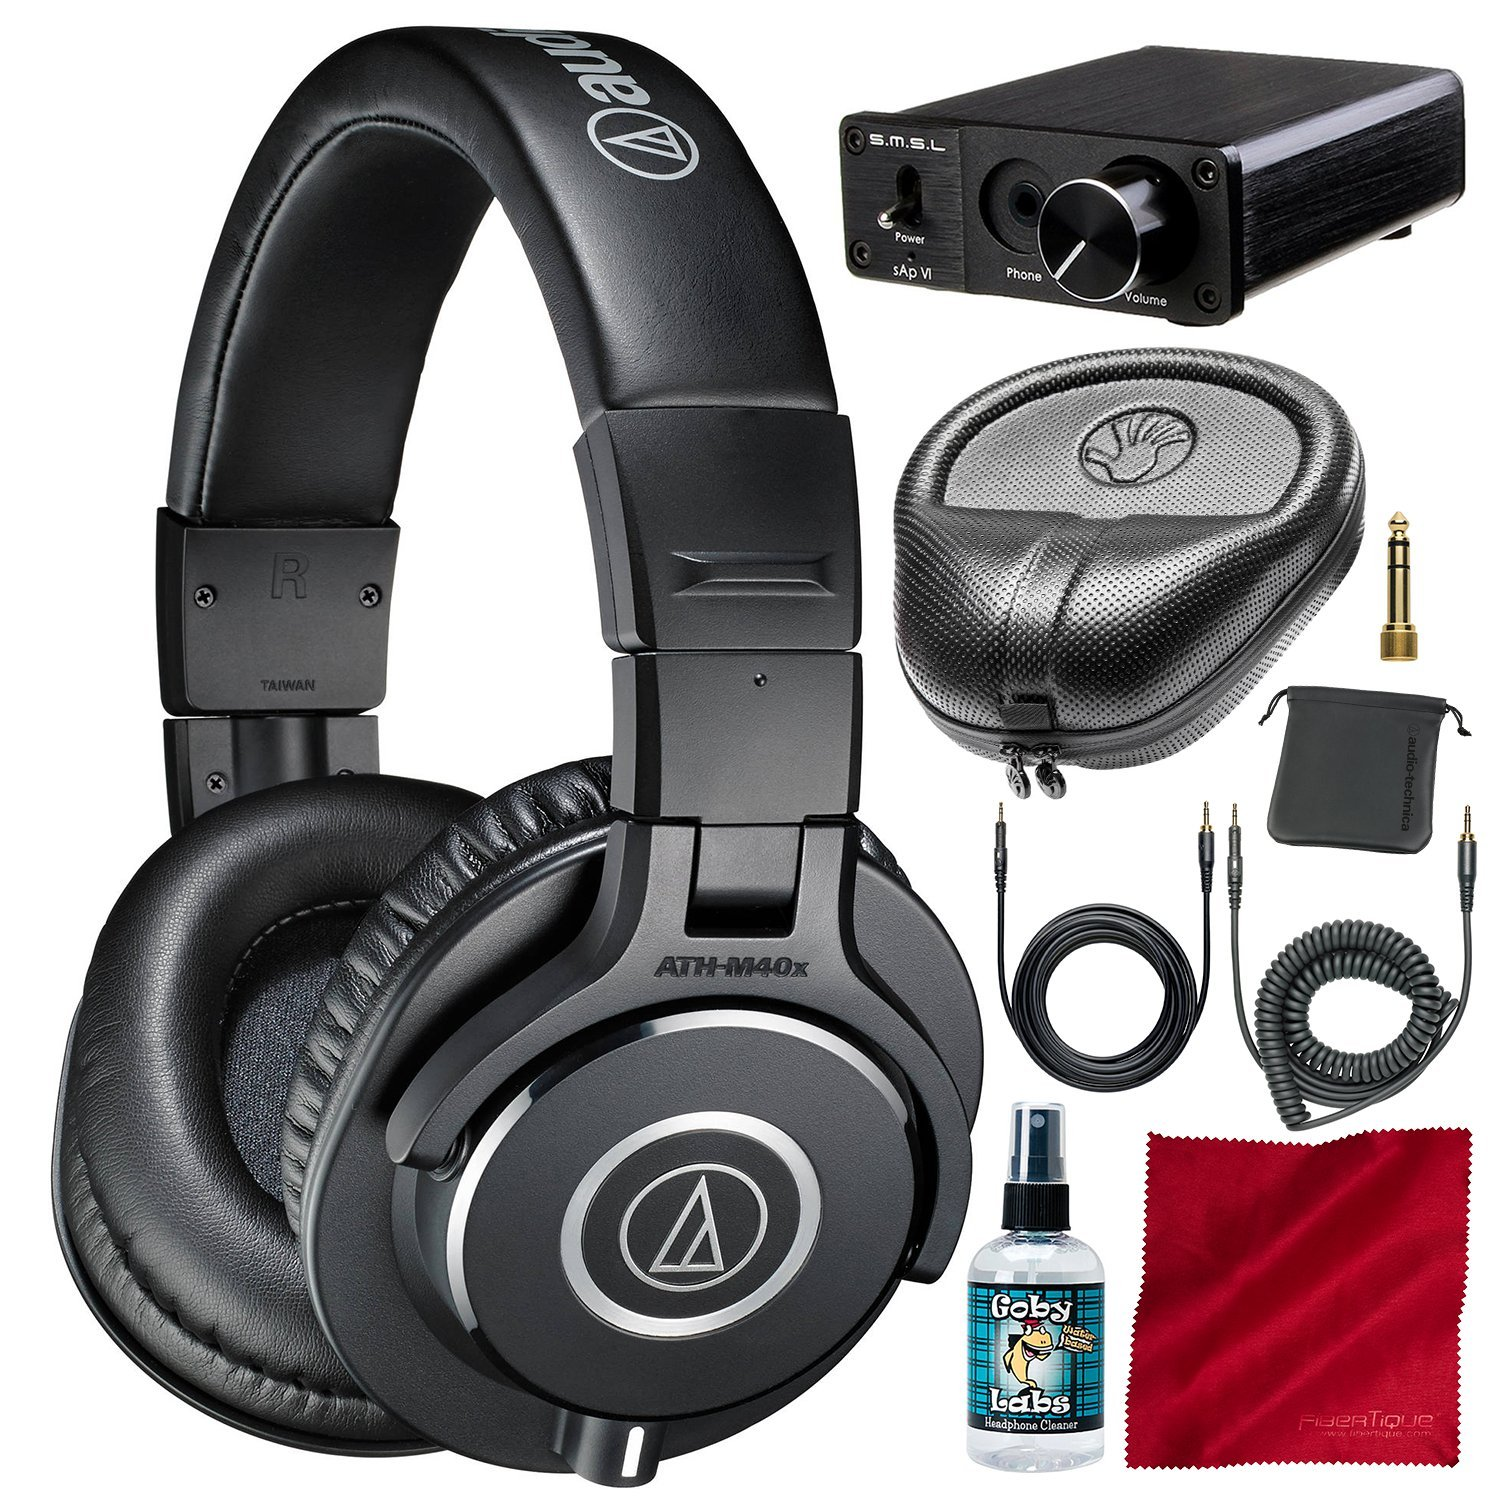 Audio-Technica ATH-M40x Monitor Headphones and Deluxe Accessory Bundle with Big Power Amplifier + Protective Case + More